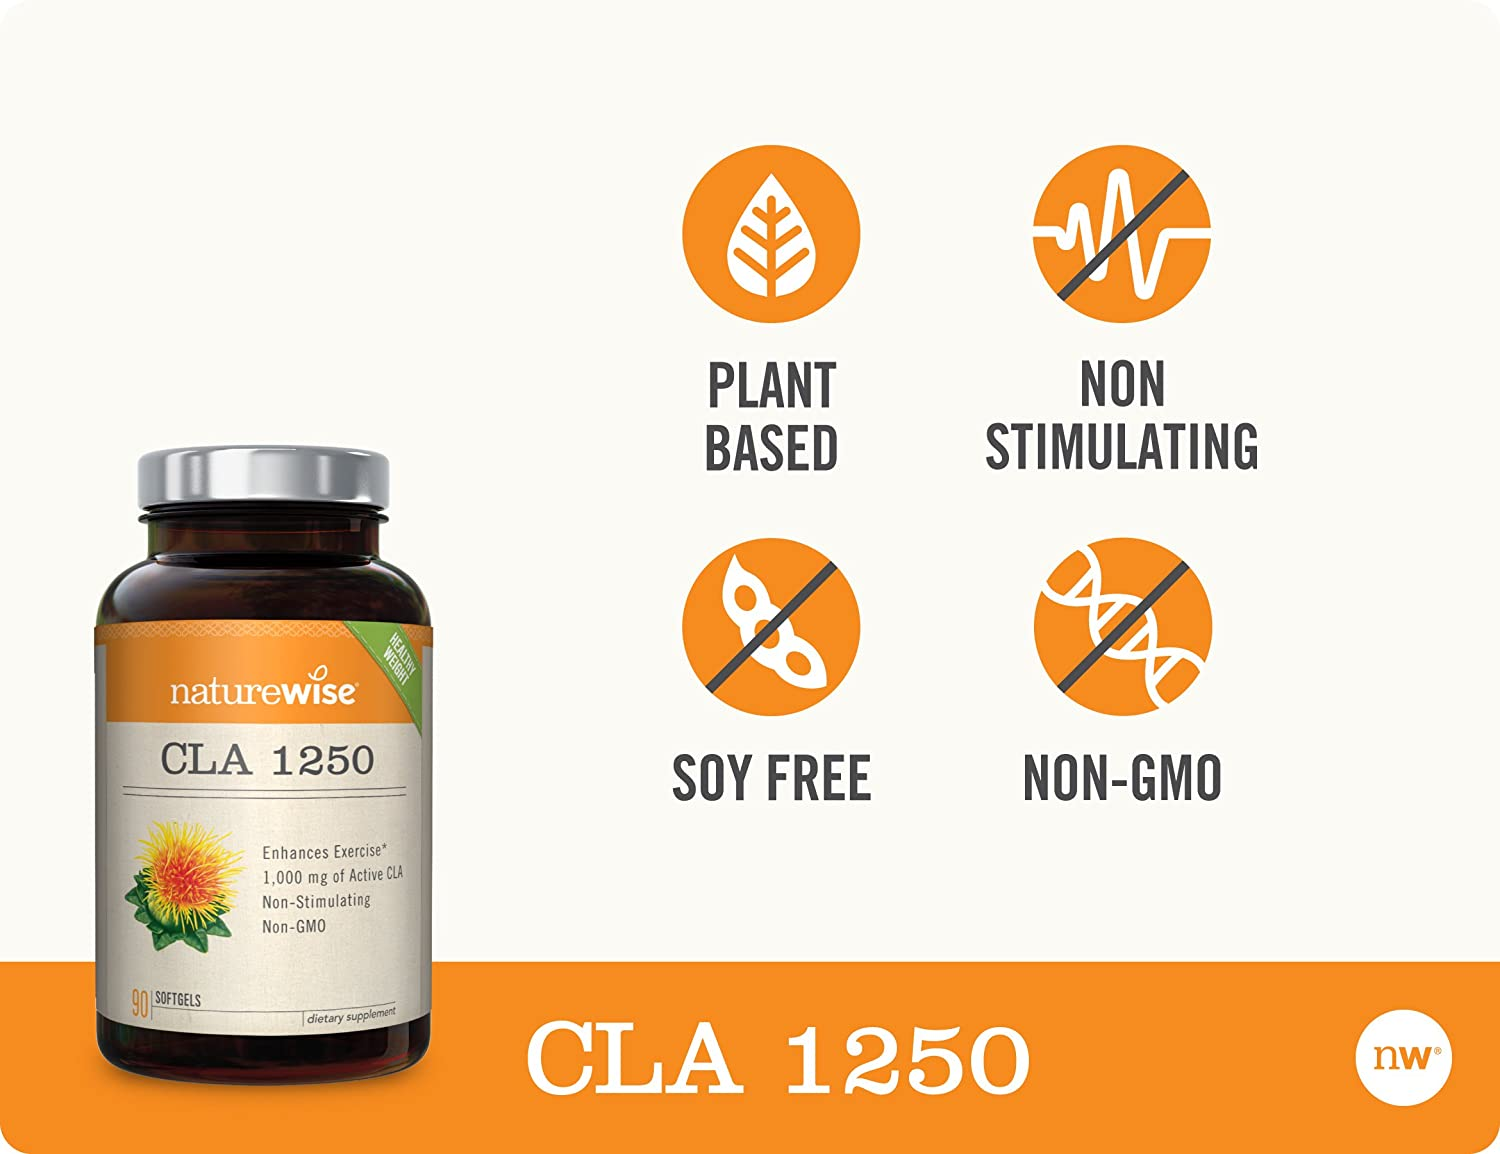 NatureWise CLA 1250, High Potency, Natural Weight Loss Exercise Enhancement | Increase Lean Muscle Mass, Non-Stimulating | Non-GMO, Gluten-Free, & 100% Safflower Oil [1 Month Supply - 90 Count]